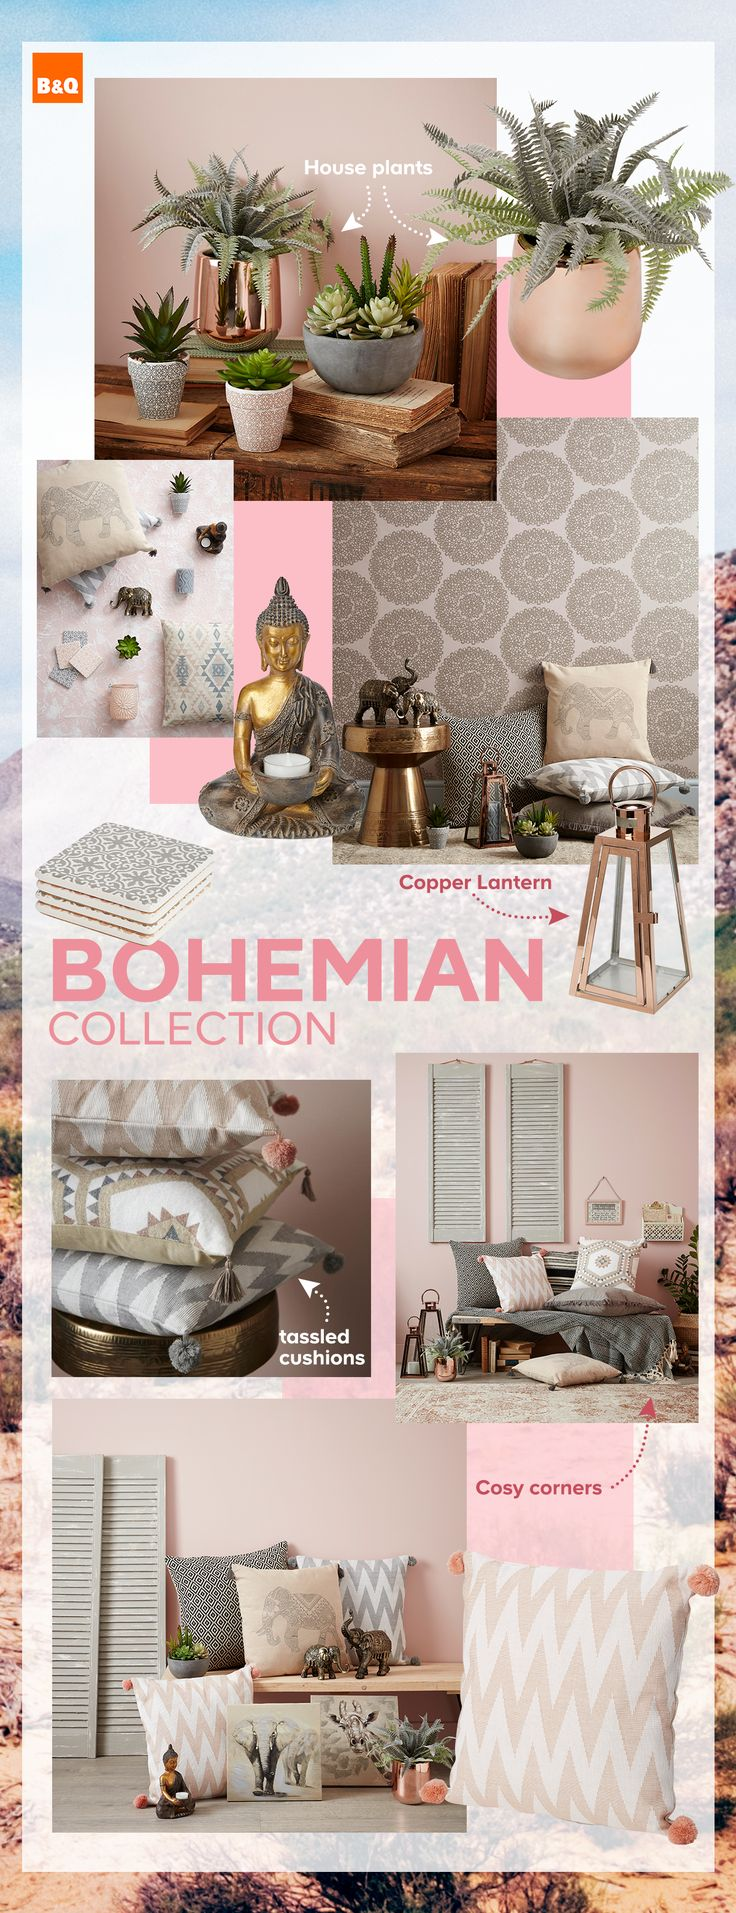 Introducing our NEW Bohemian decor collection - Create a relaxing bohemian boudoir by adding soft tones and tons of texture to your home this season. Our new spring/summer decor collection is full of charm, so your mood will feel as serene as your home.